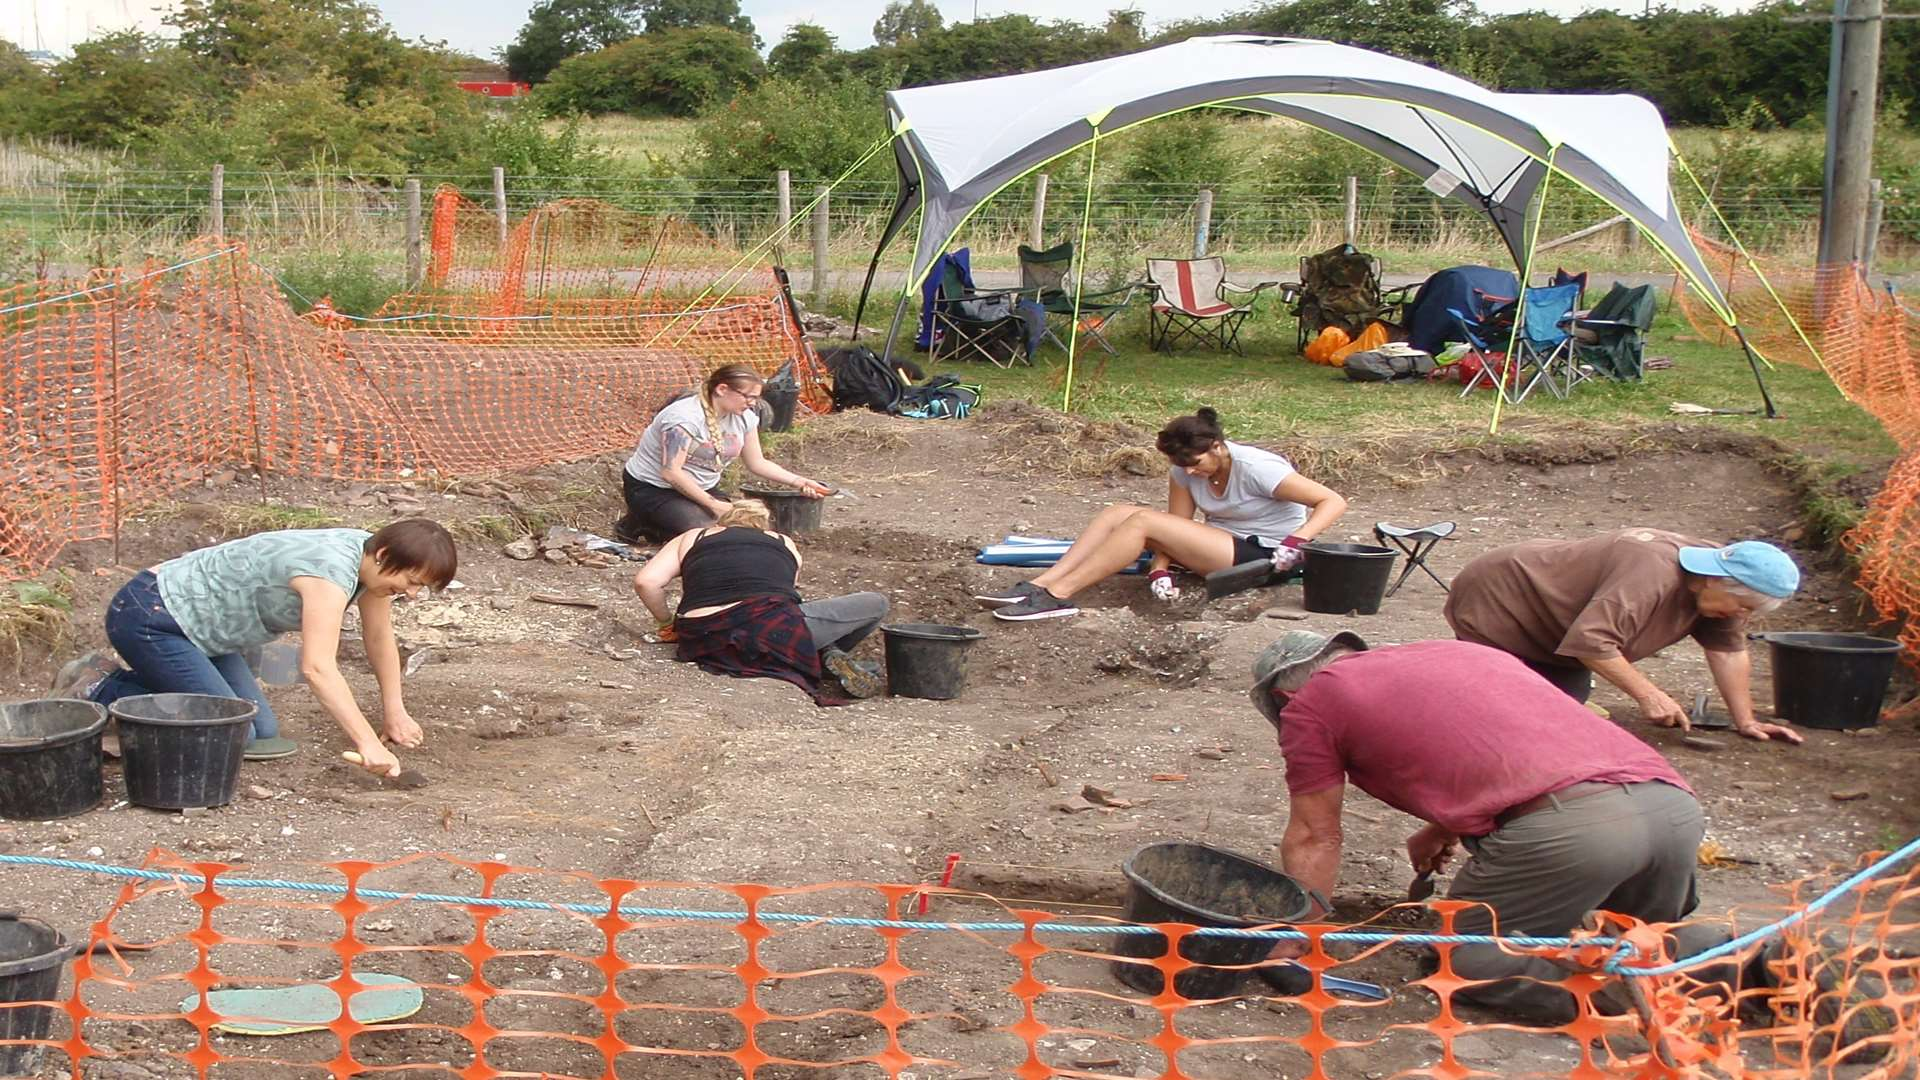 Ongoing excavation have uncovered evidence of an emporium serving the port at Faversham.